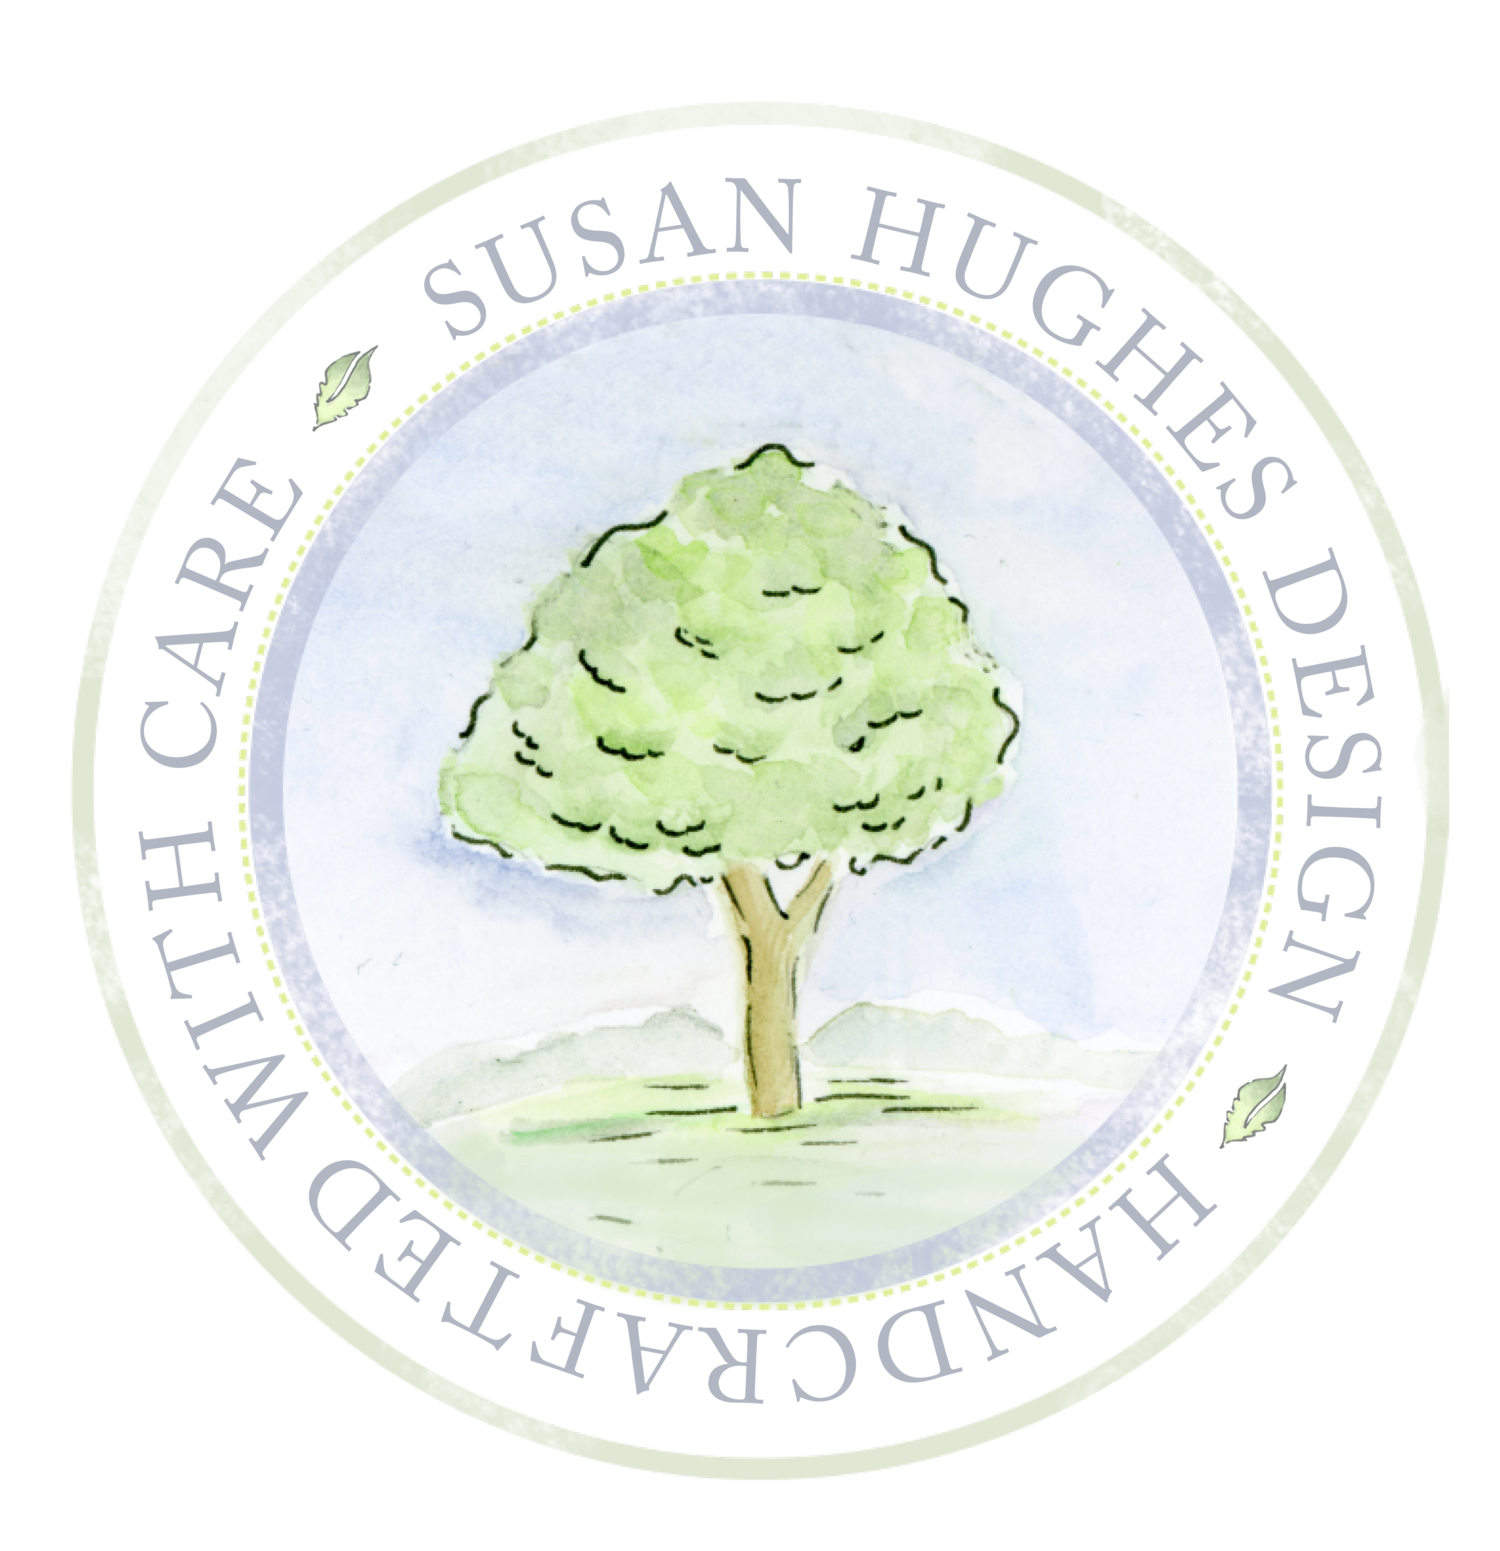 Susan Hughes Design • Logos + Graphic Design